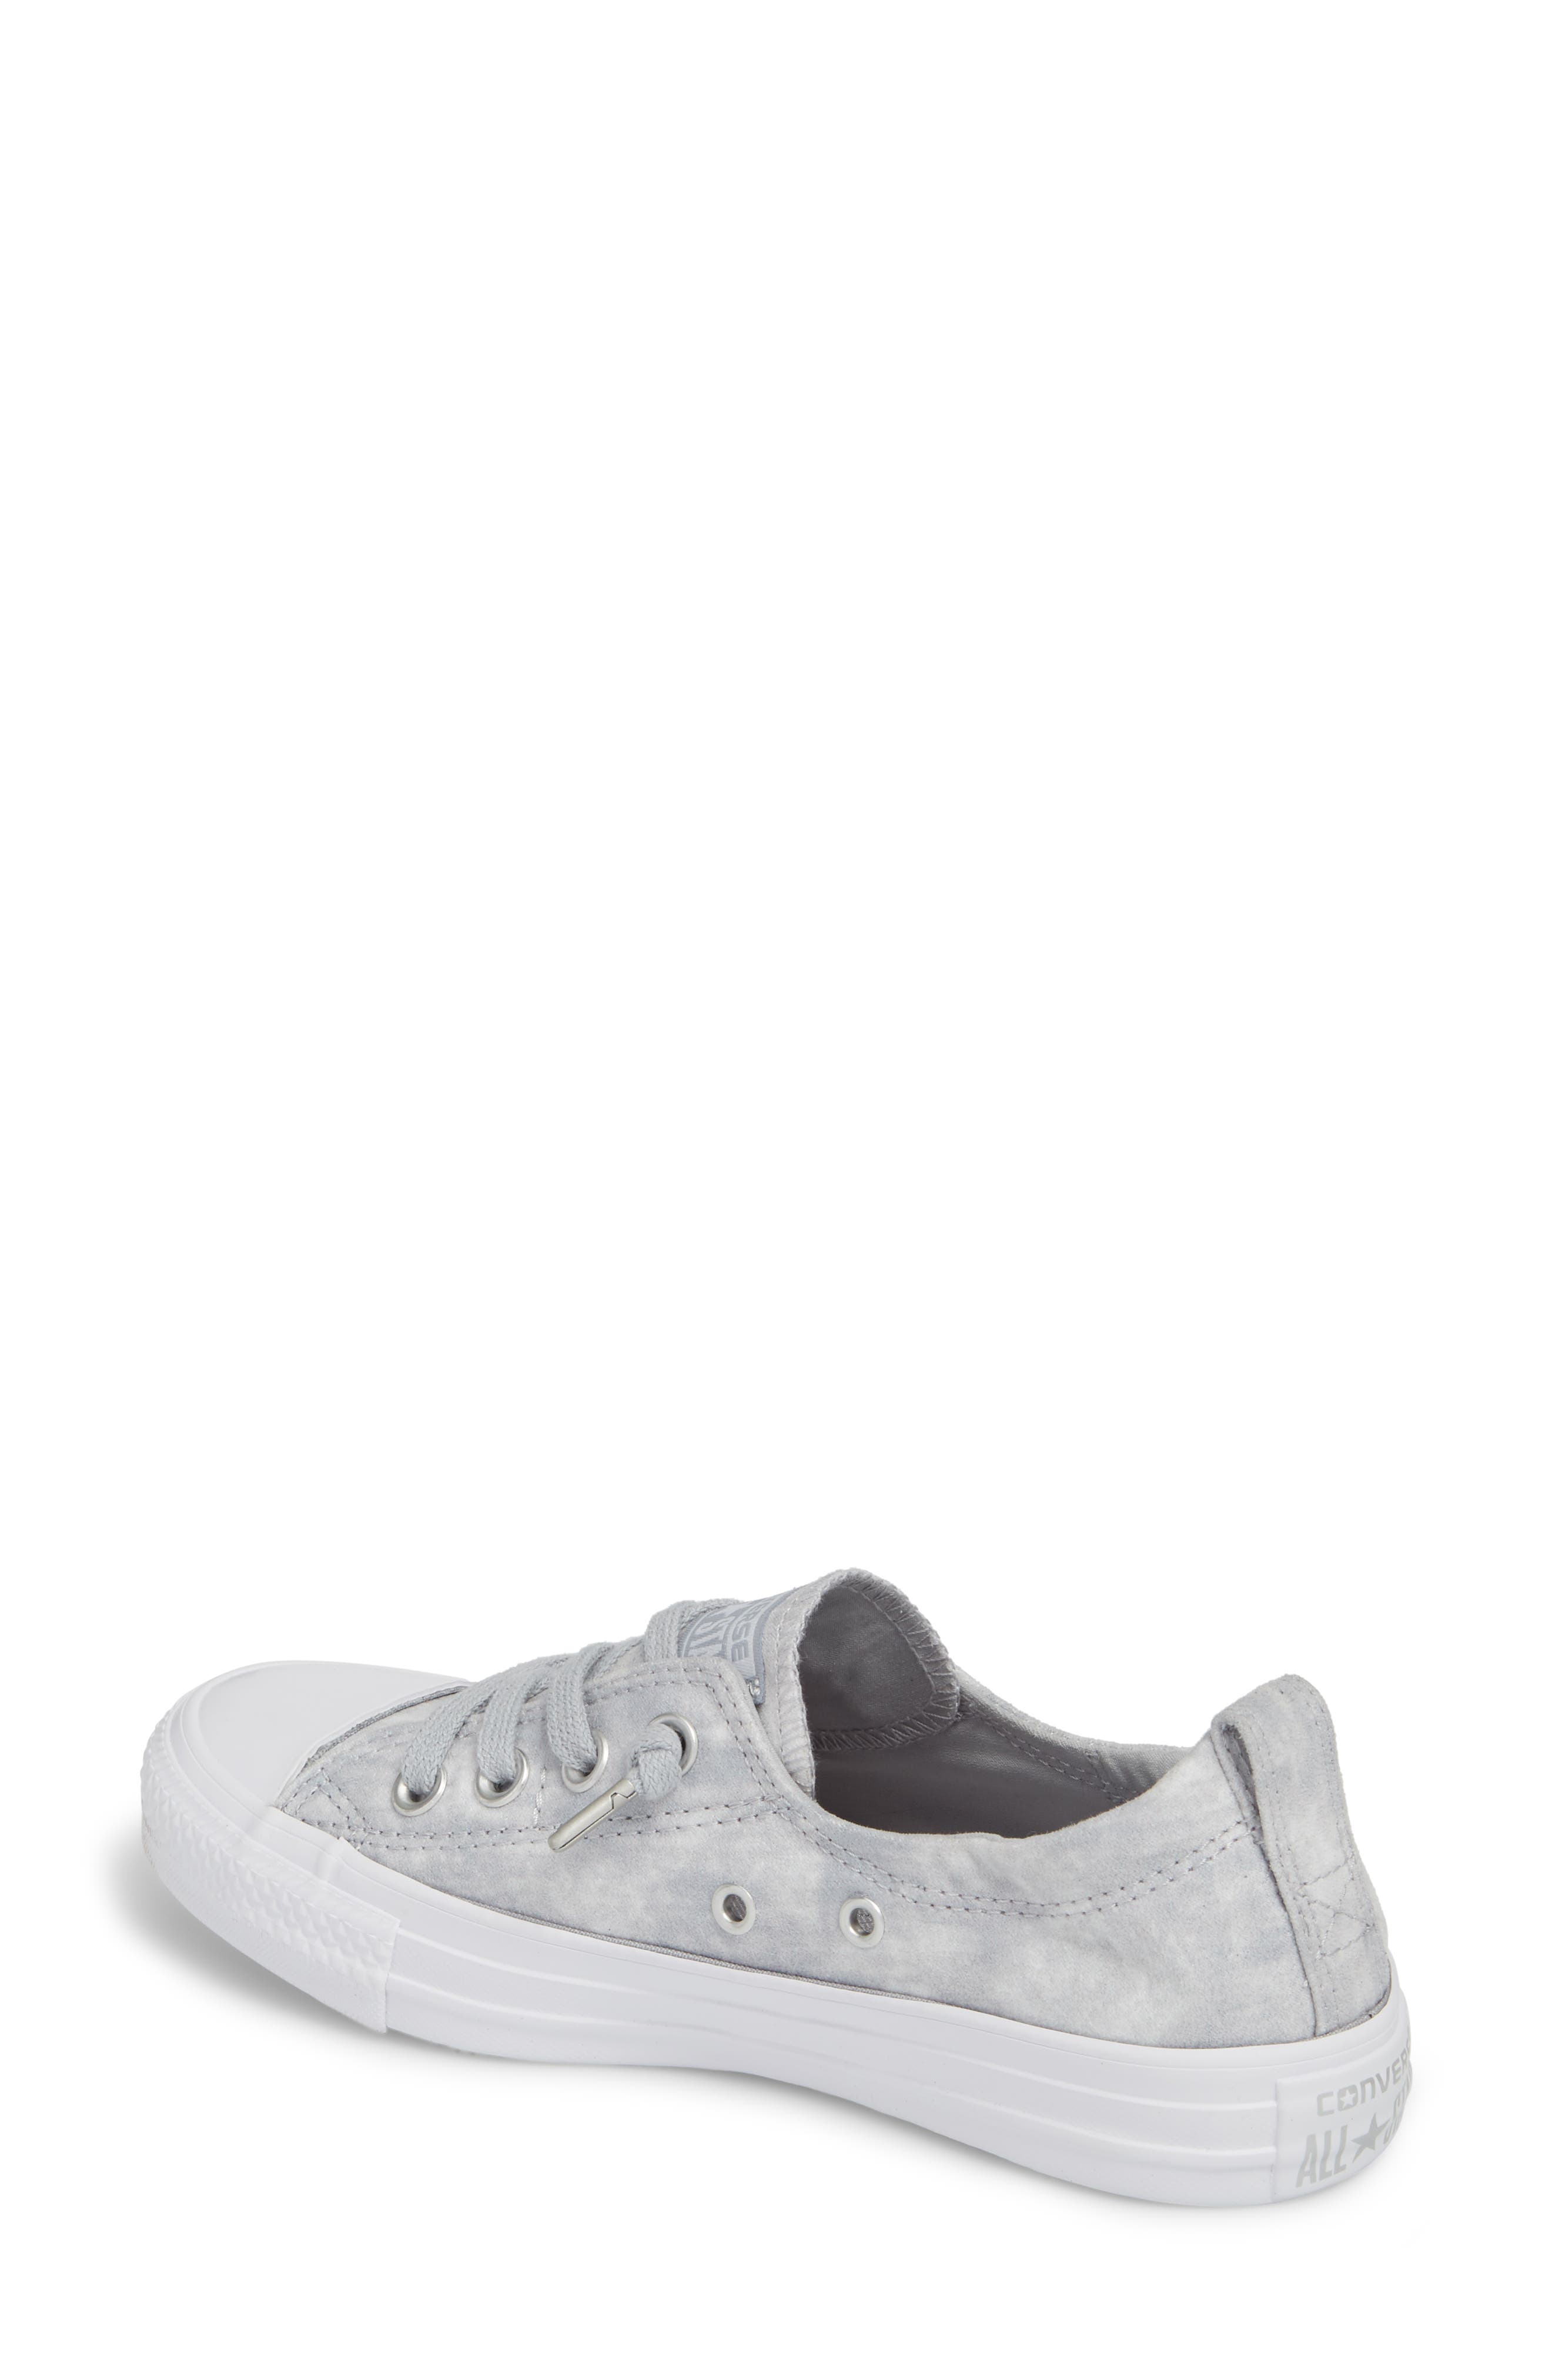 Chuck Taylor<sup>®</sup> All Star<sup>®</sup> Shoreline Peached Twill Sneaker,                             Alternate thumbnail 2, color,                             027